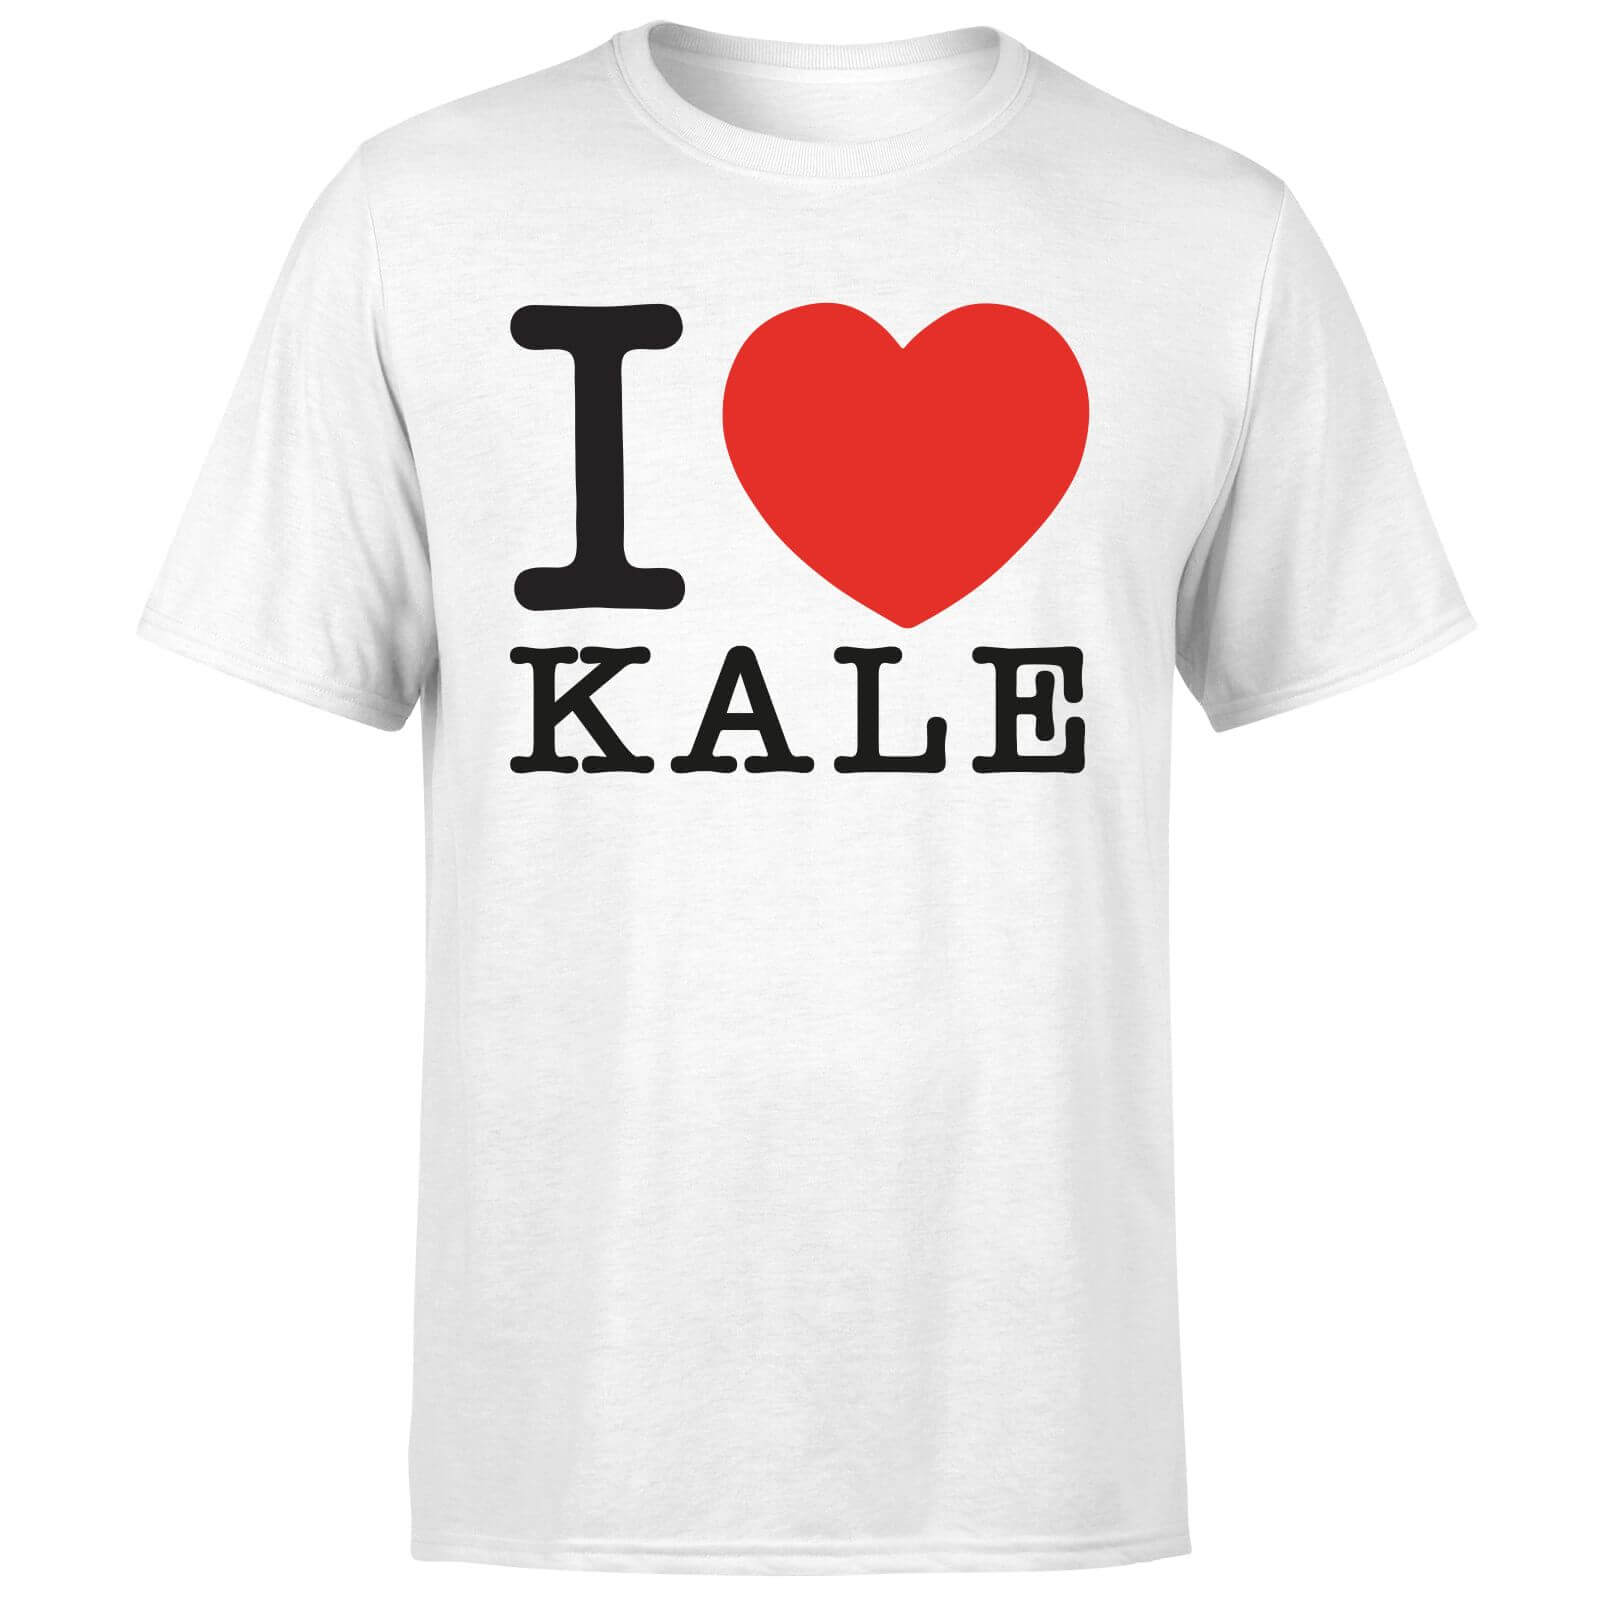 I Heart Kale T-Shirt - White